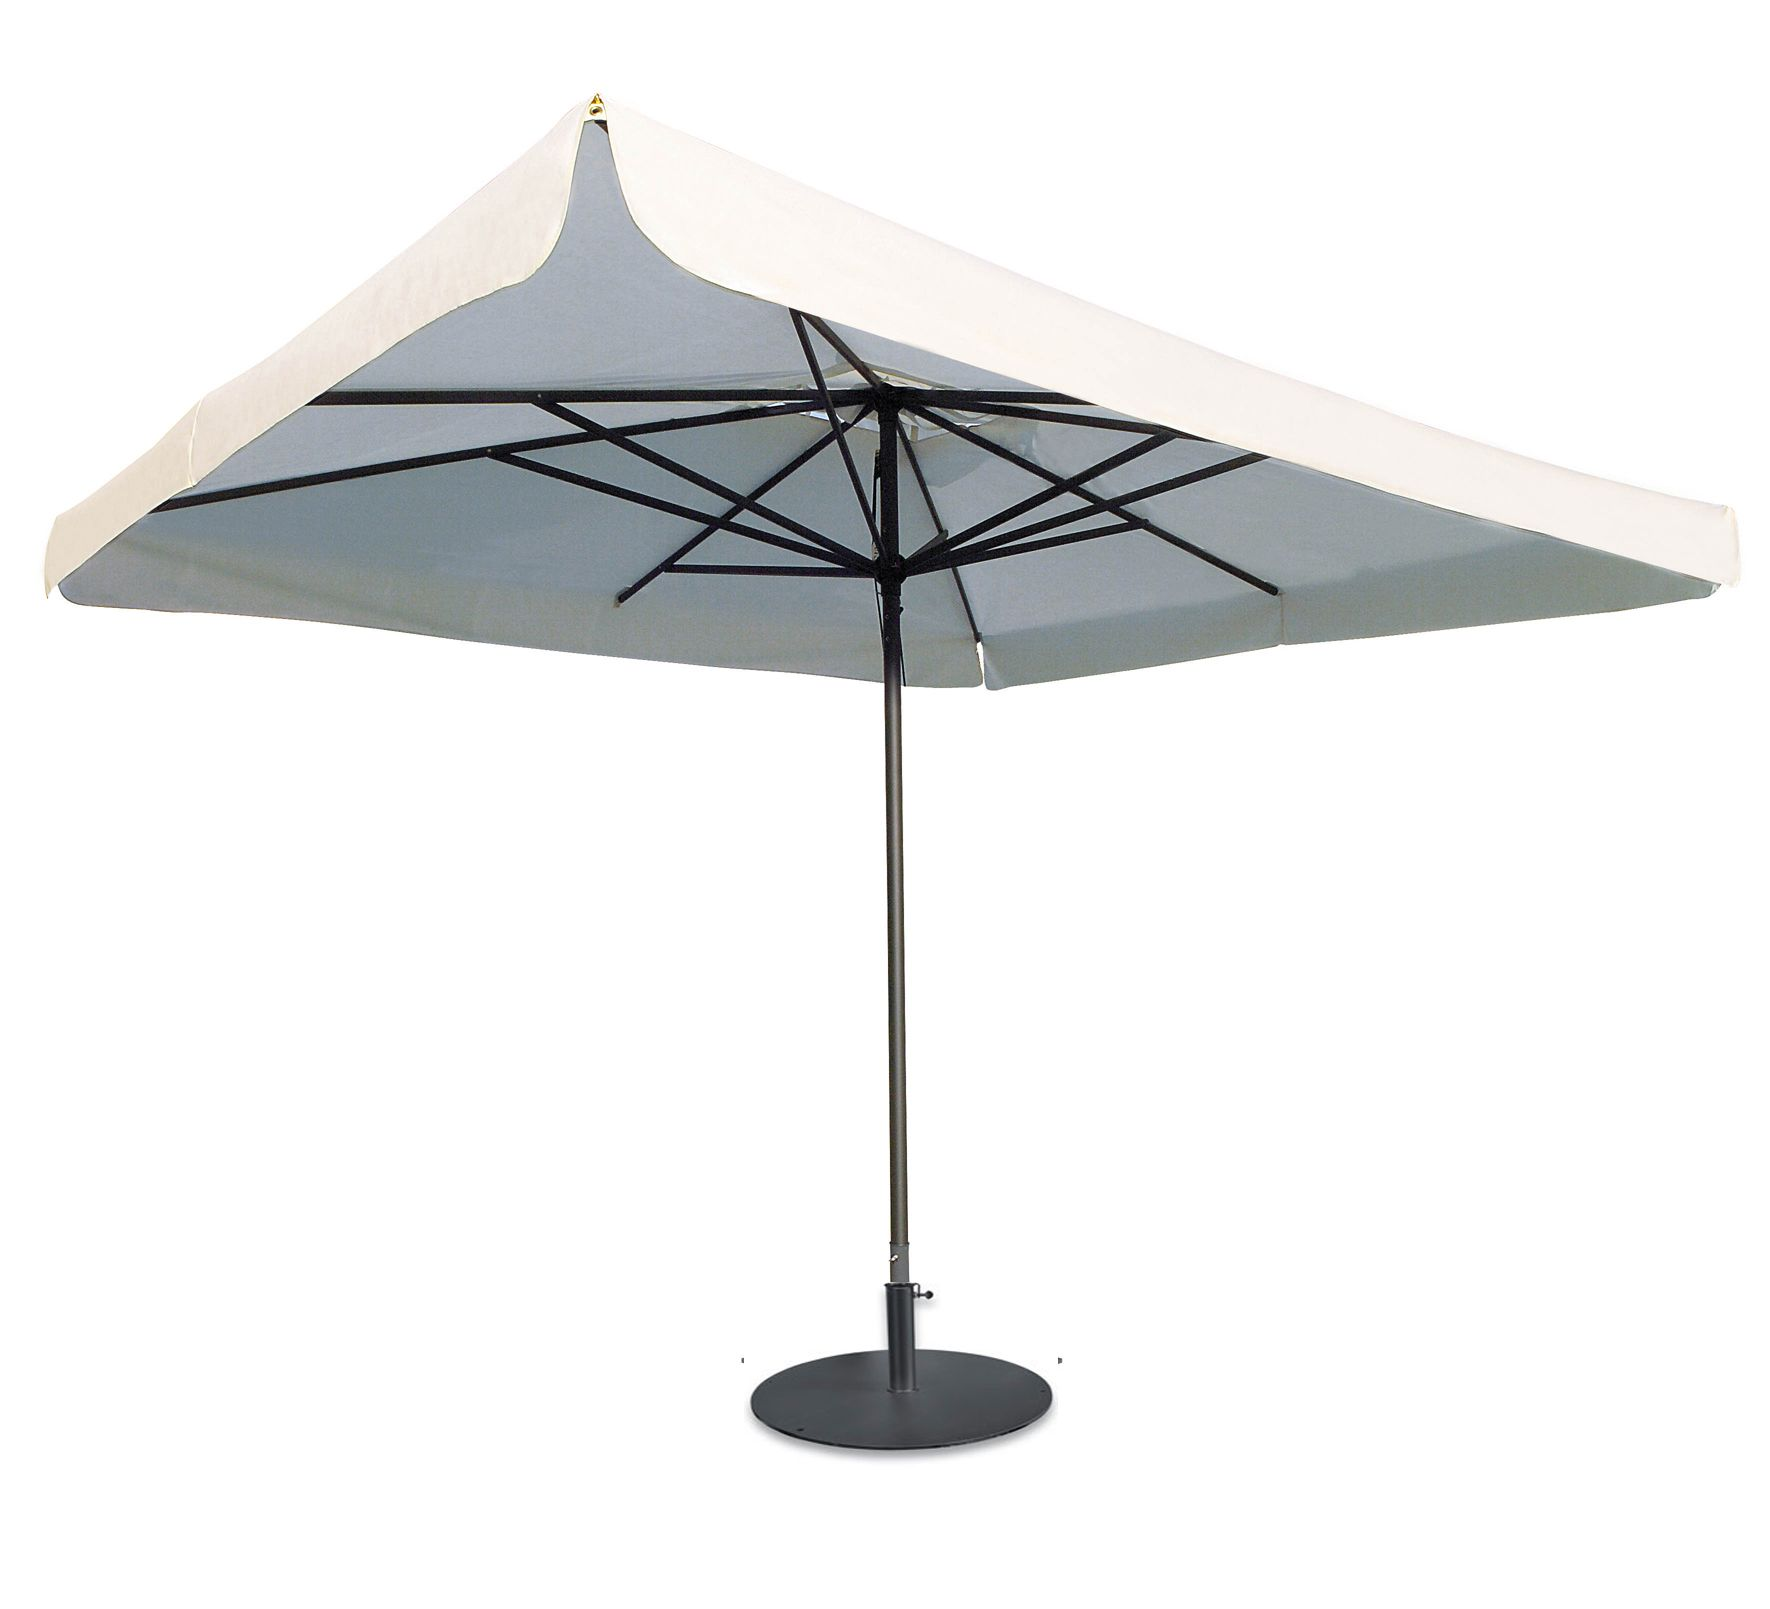 Best Formation Of Rectangular Patio Umbrella   Rectangular Patio Umbrella, Rectangular  Patio Umbrella Clearance,